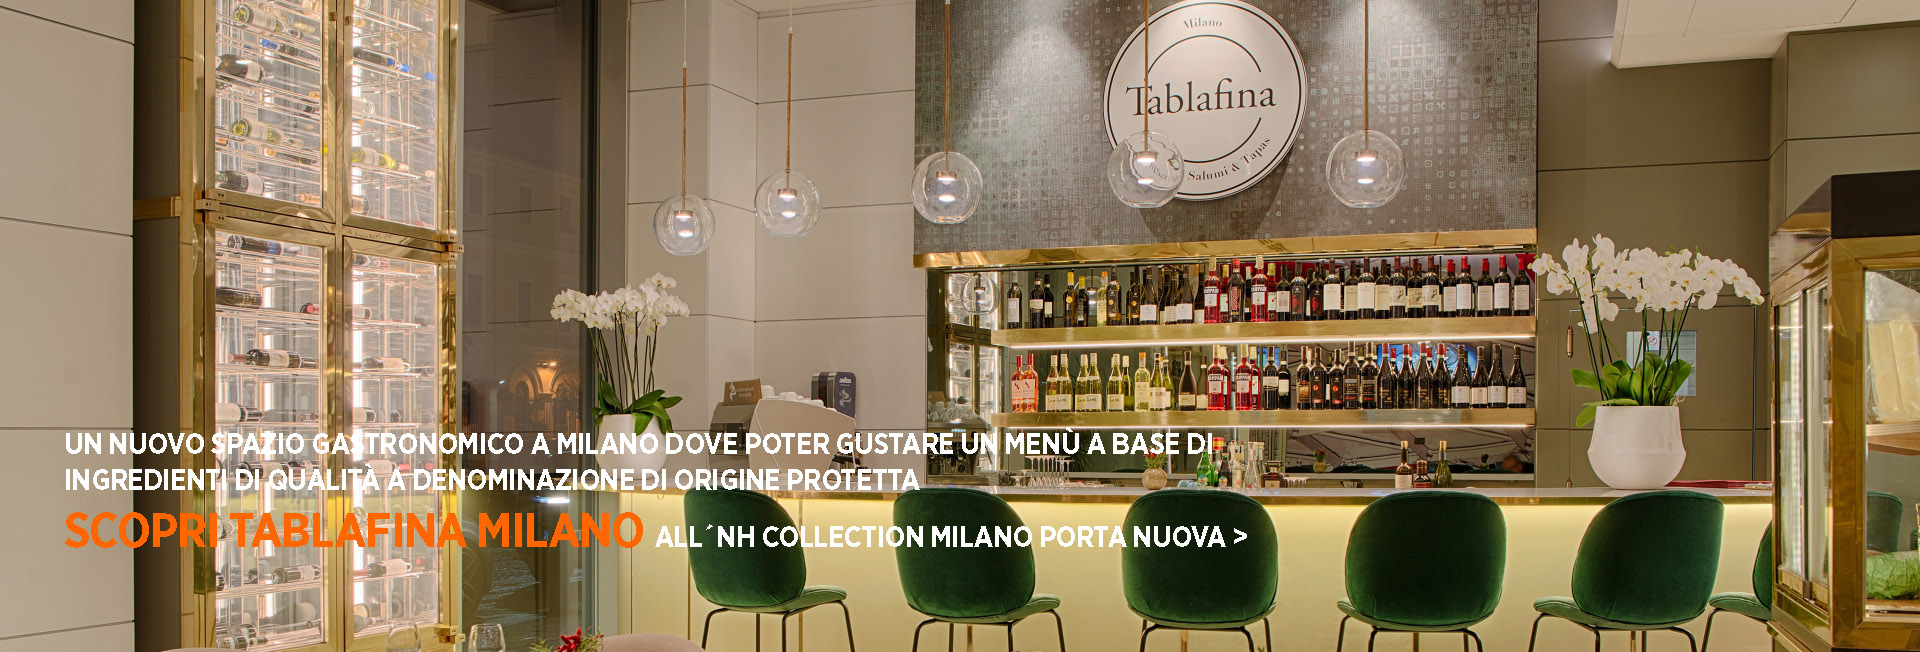 Slider_Milan_IT